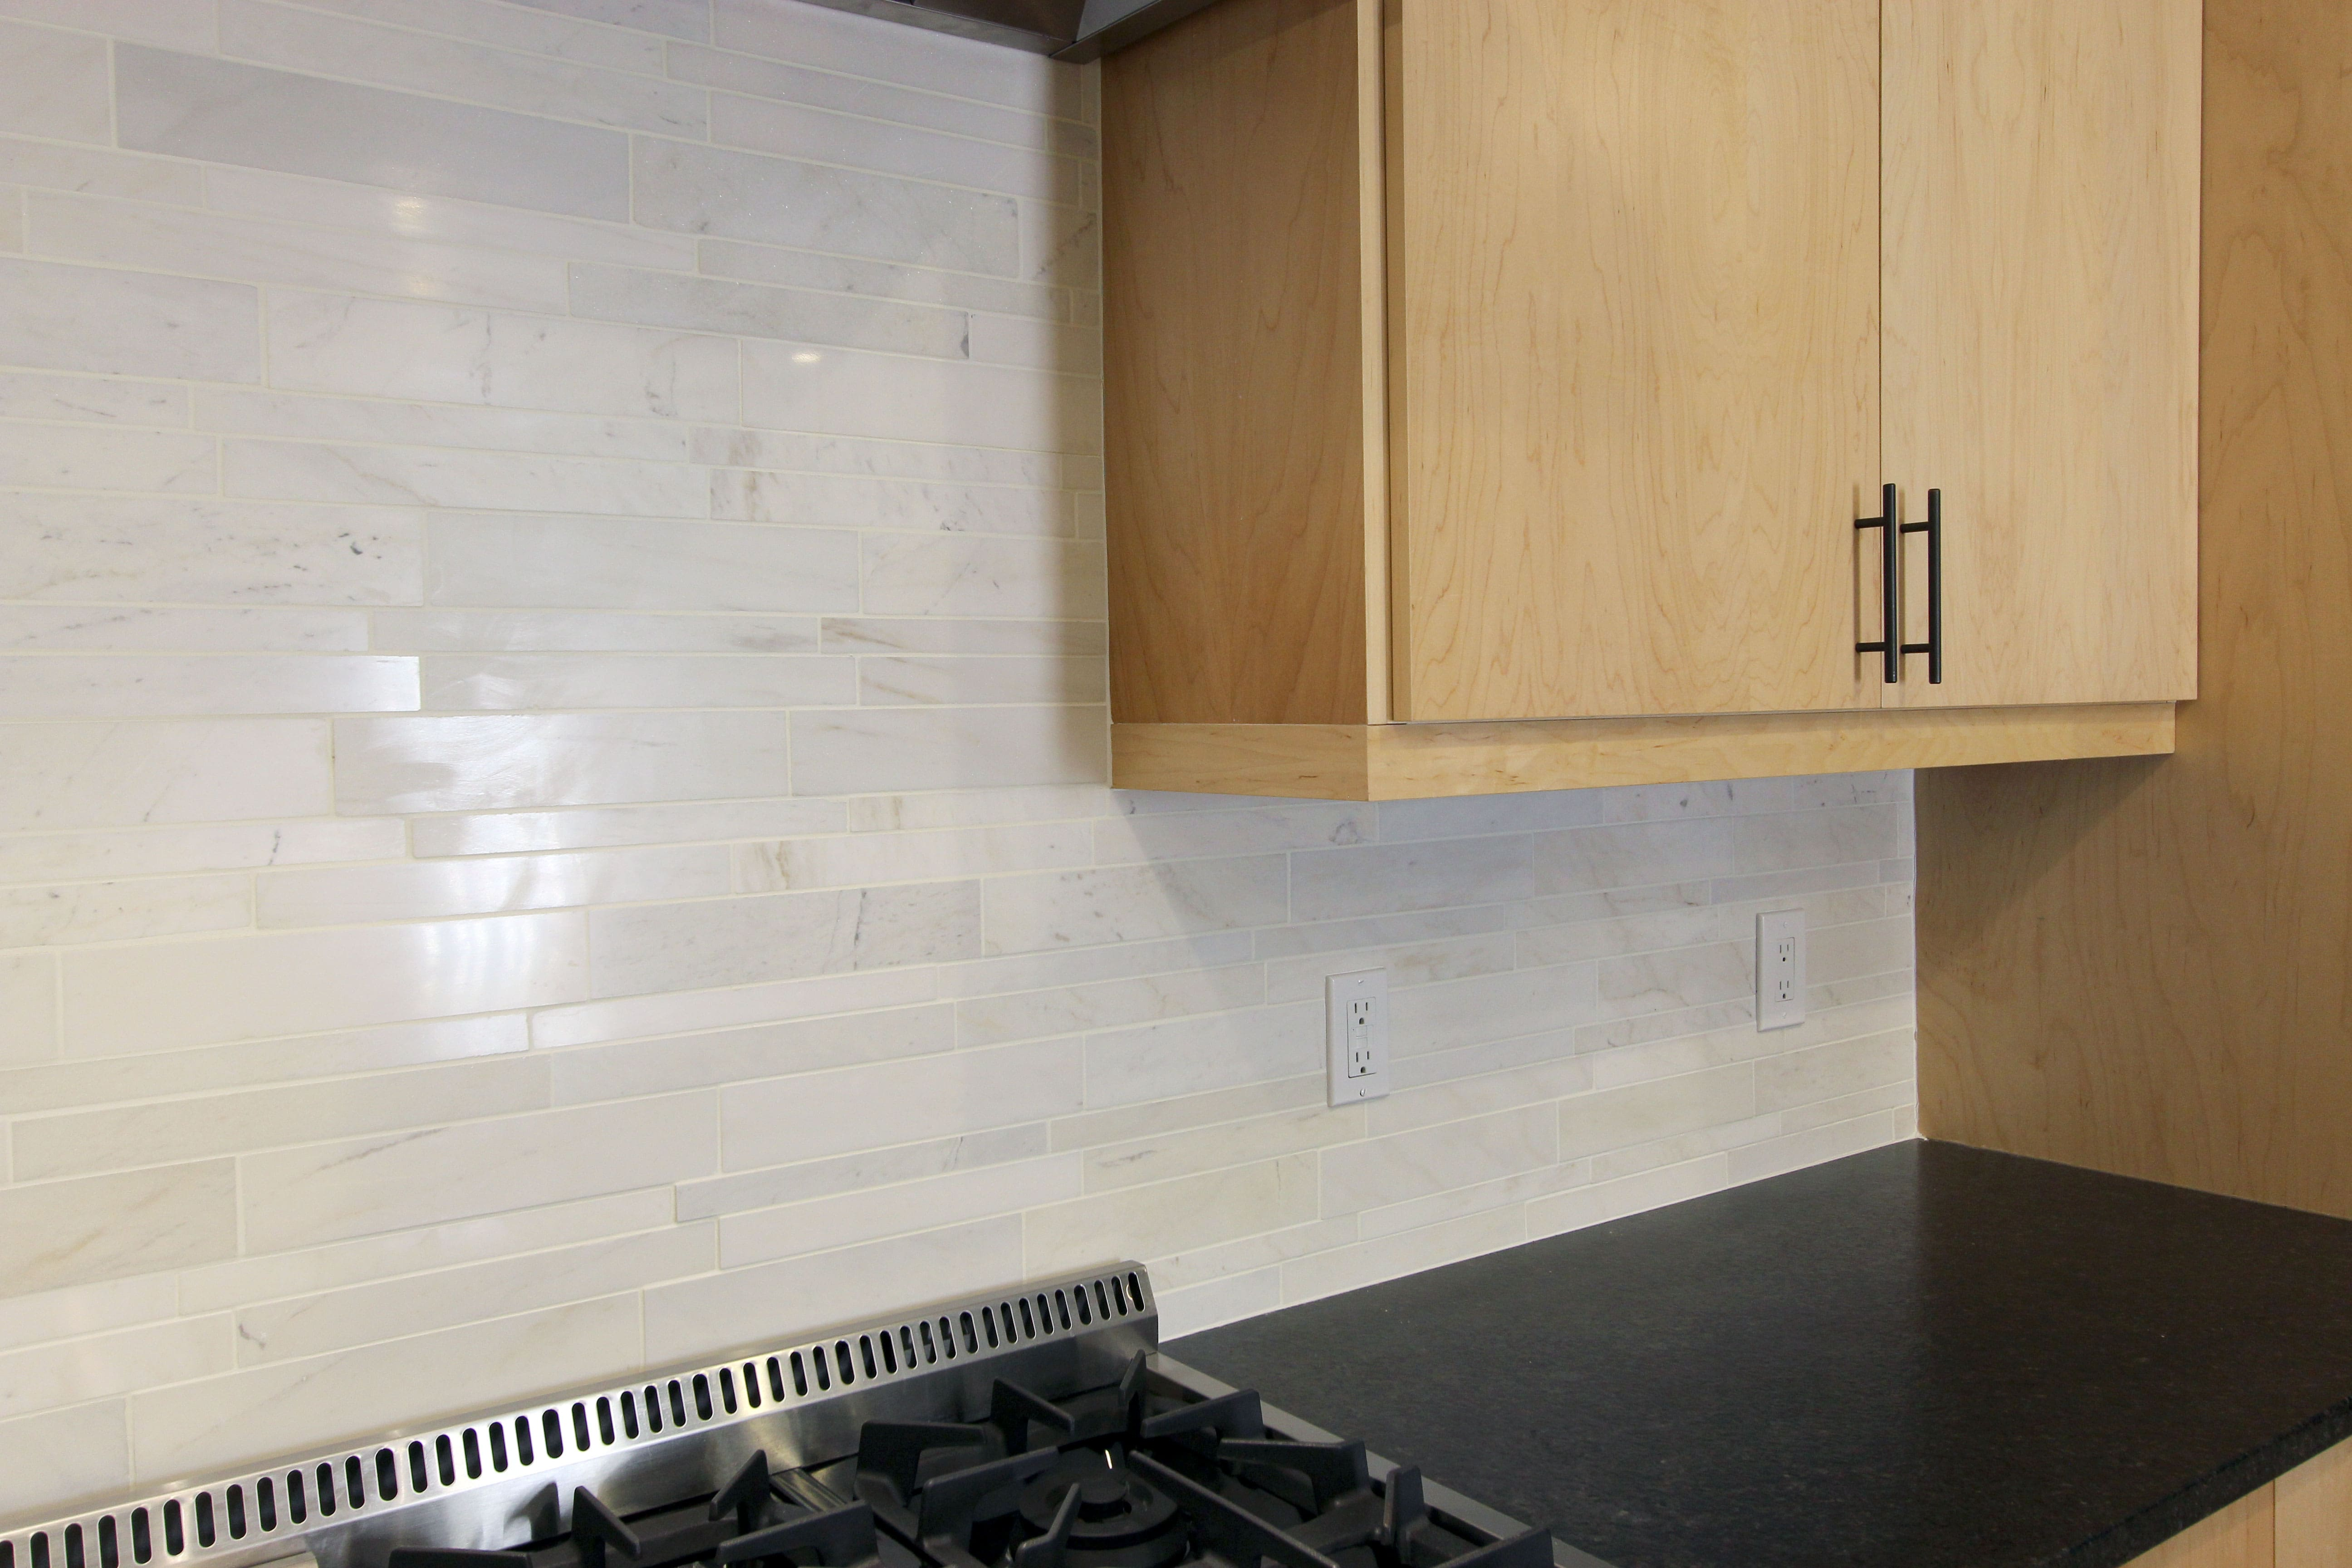 Norstone White Marble Lynia Interlocking Tiles used on a kitchen backsplash showing electric outlets extended out against the tile